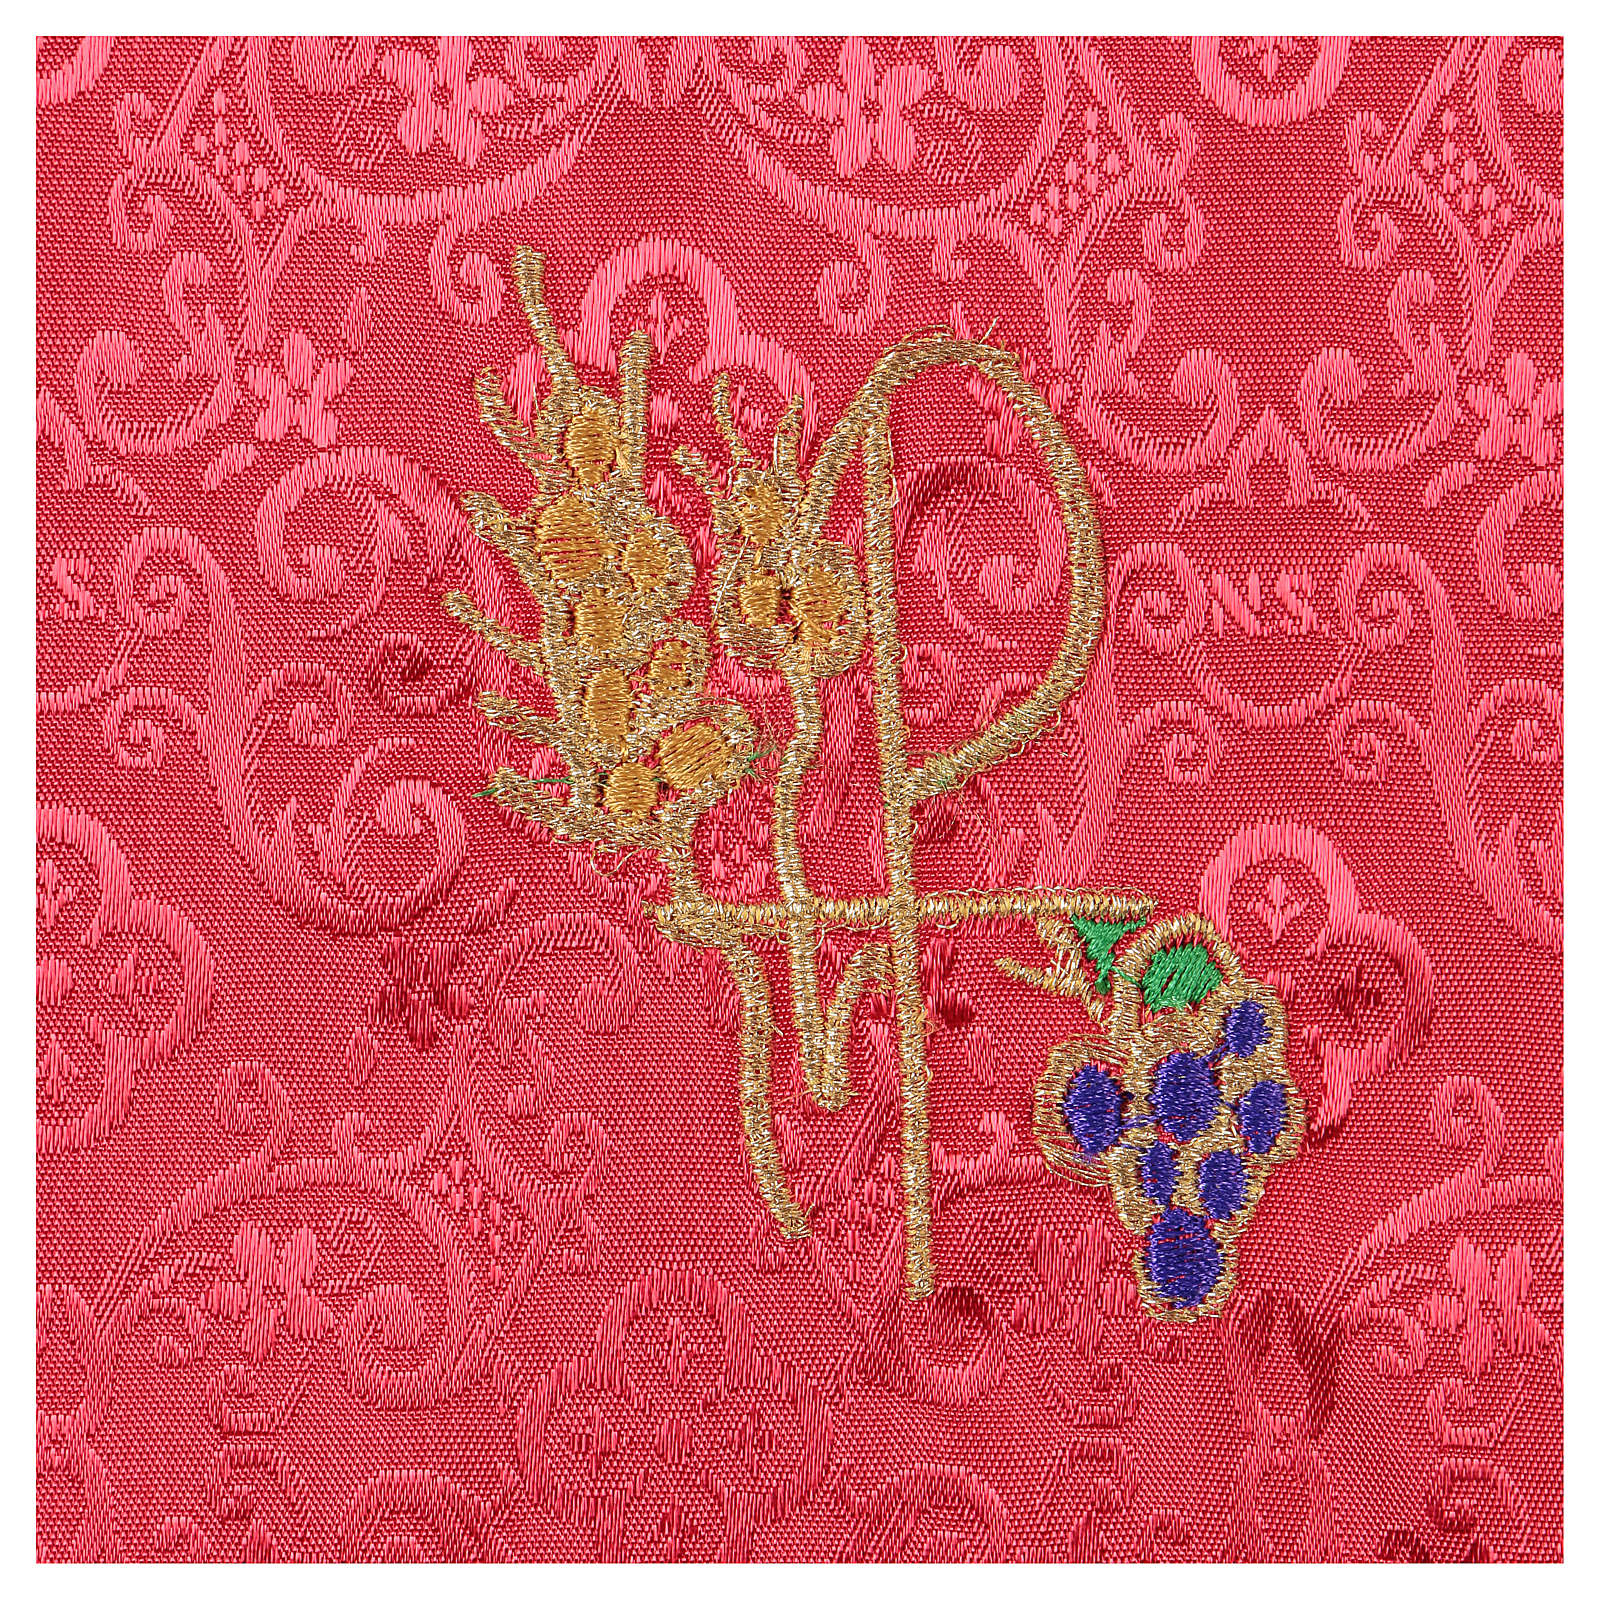 Chalice veil (pall) with Xp, wheat and grapes embroidery on red jacquard fabric 4